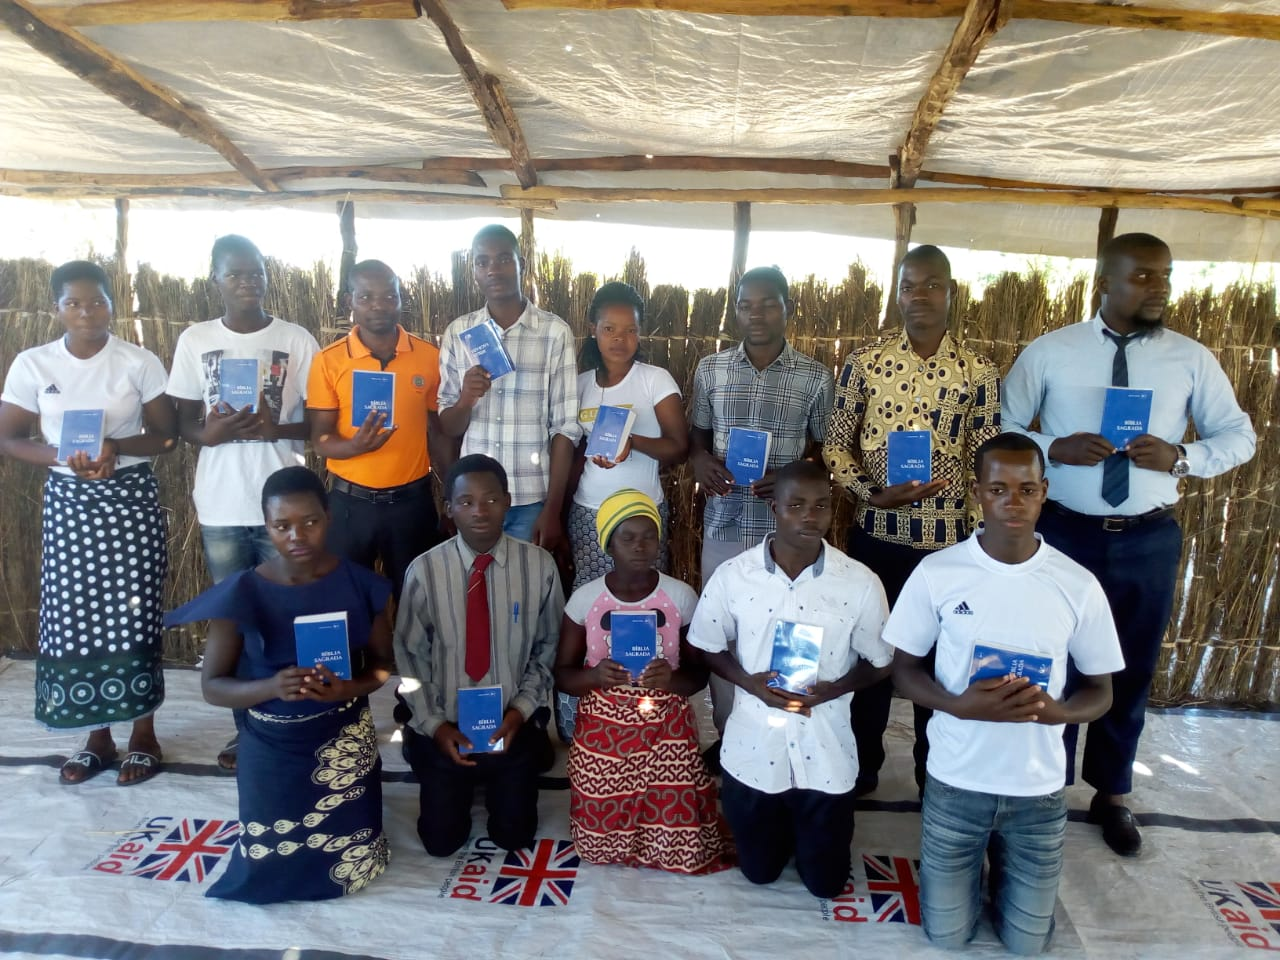 Bible study students with their new Bibles